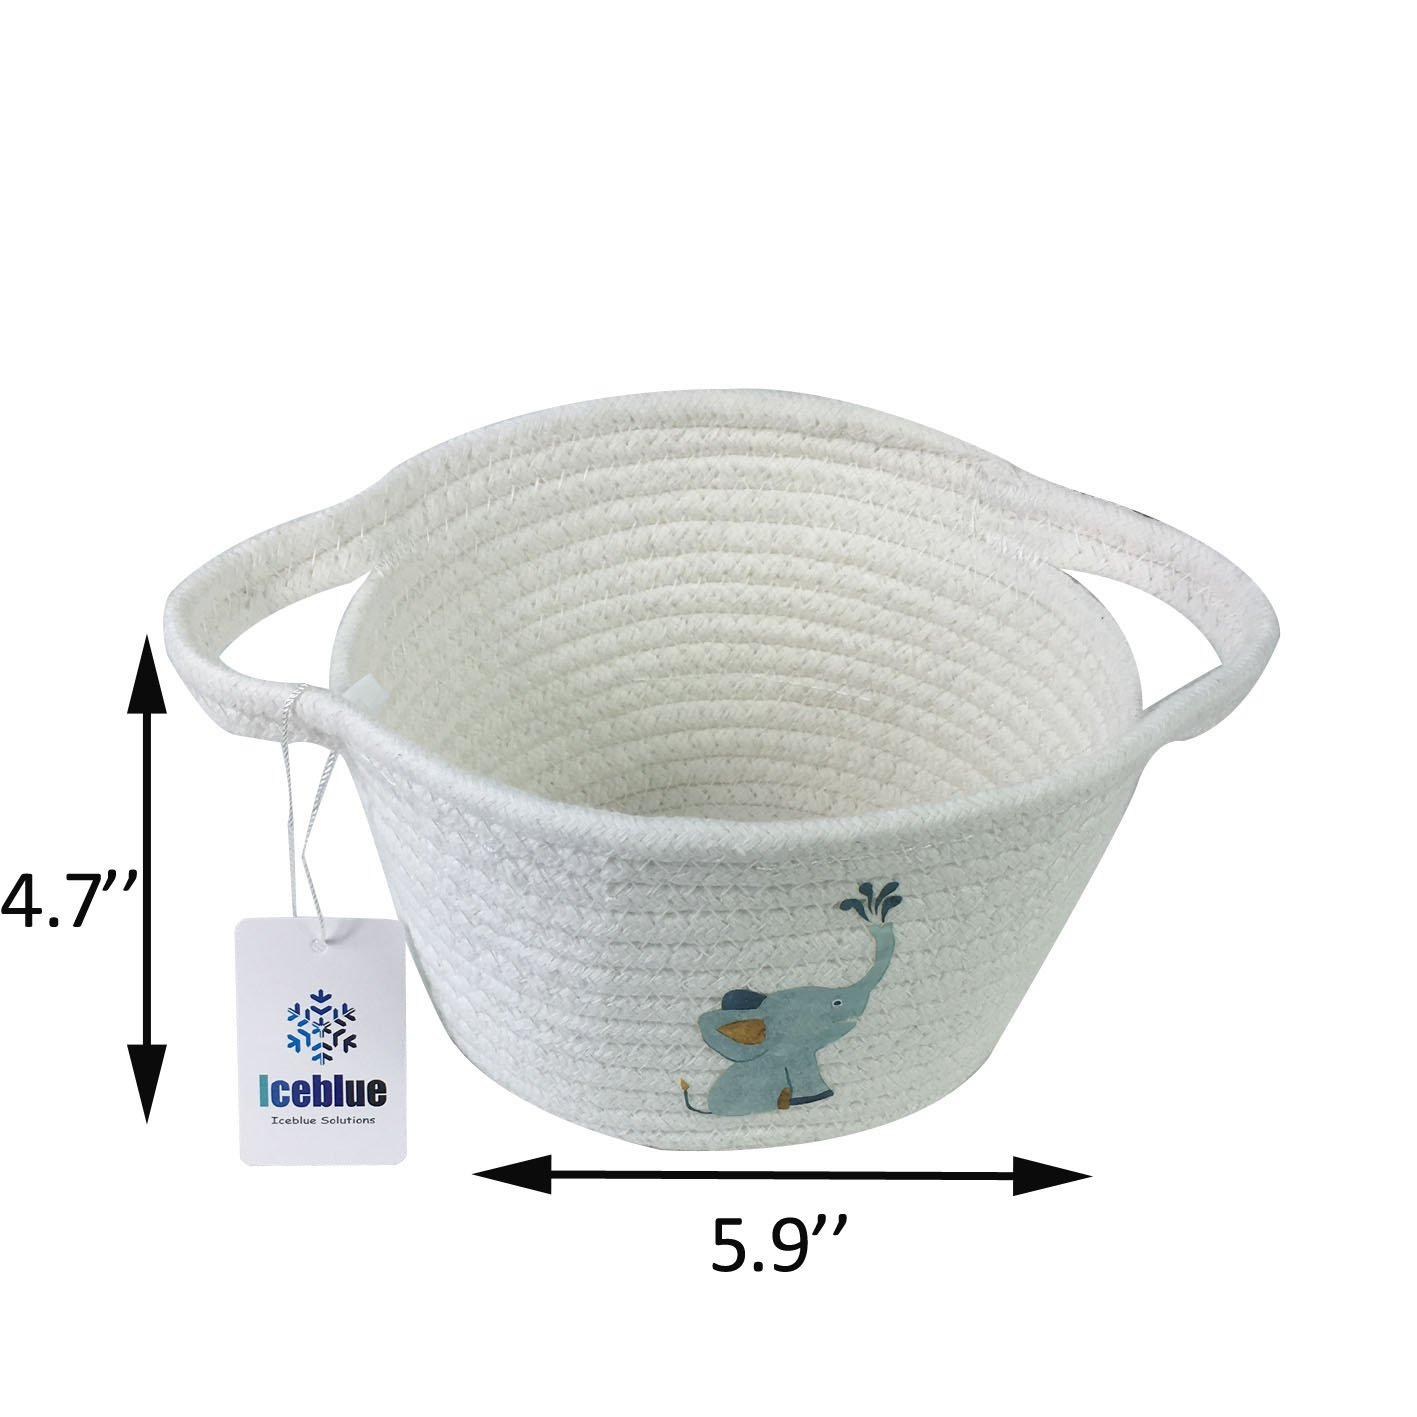 ICEBLUE 5.9 X5.9X4.7 Cute Elephant Design Mini Cotton Rope Storage Bin Basket Organizer with Handles